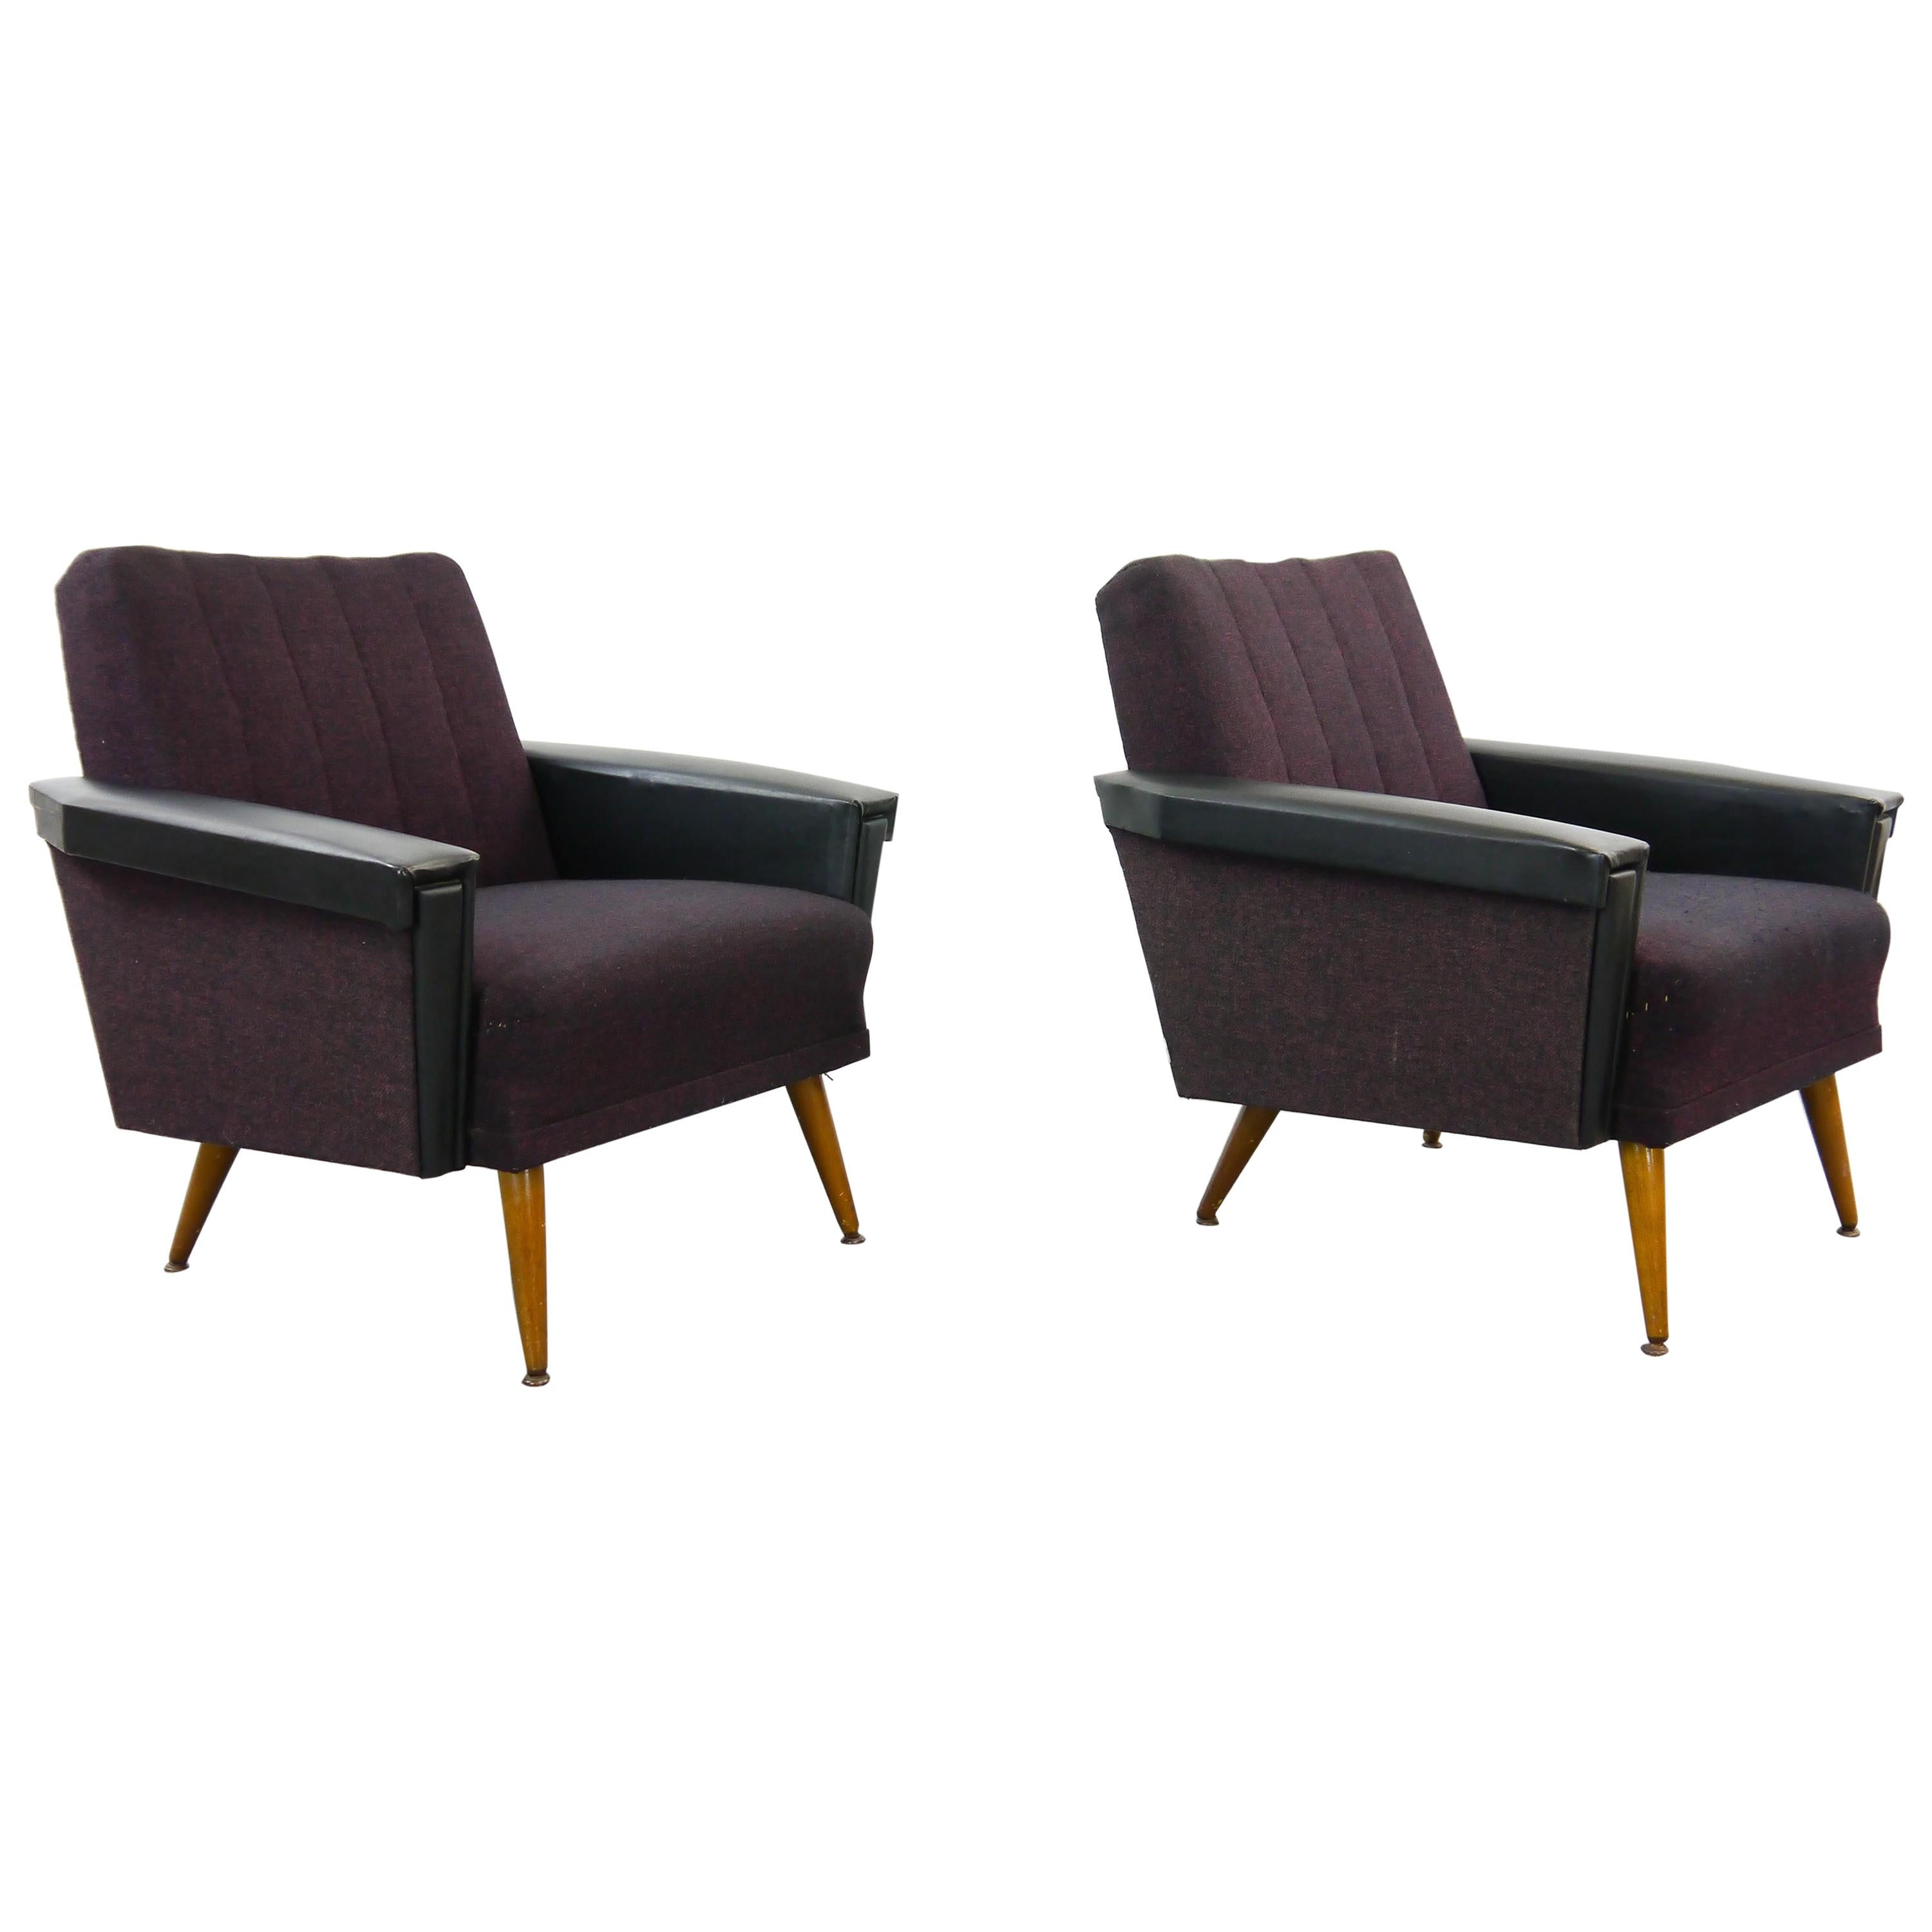 Vintage Pair of Midcentury Cocktail Chairs or Club Chairs in Purple-Black, 1950s